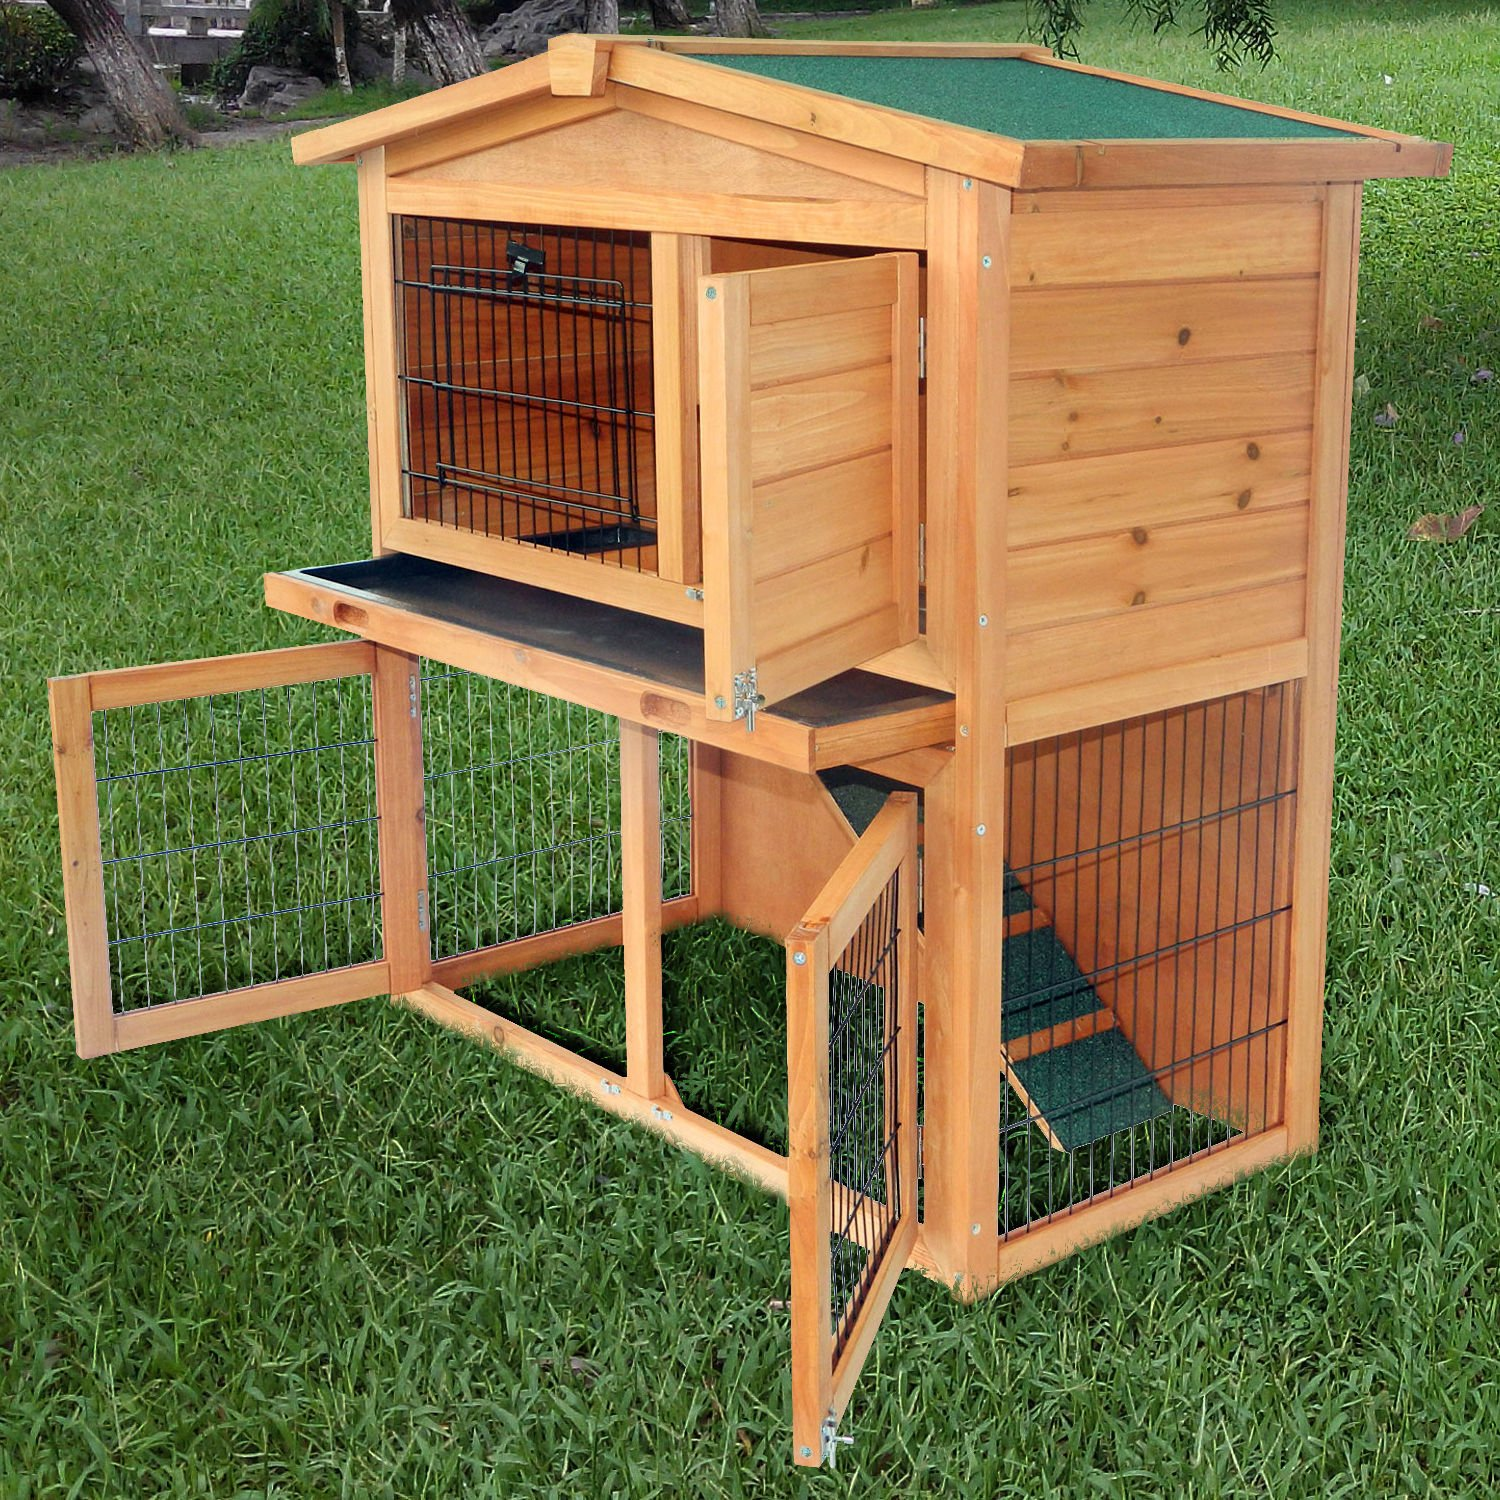 Wooden Rabbit Hutch Small Animal House Pet Cage Chicken Coop A-Frame 40''Pet Holds Cages Home - House Deals by House Deals (Image #5)